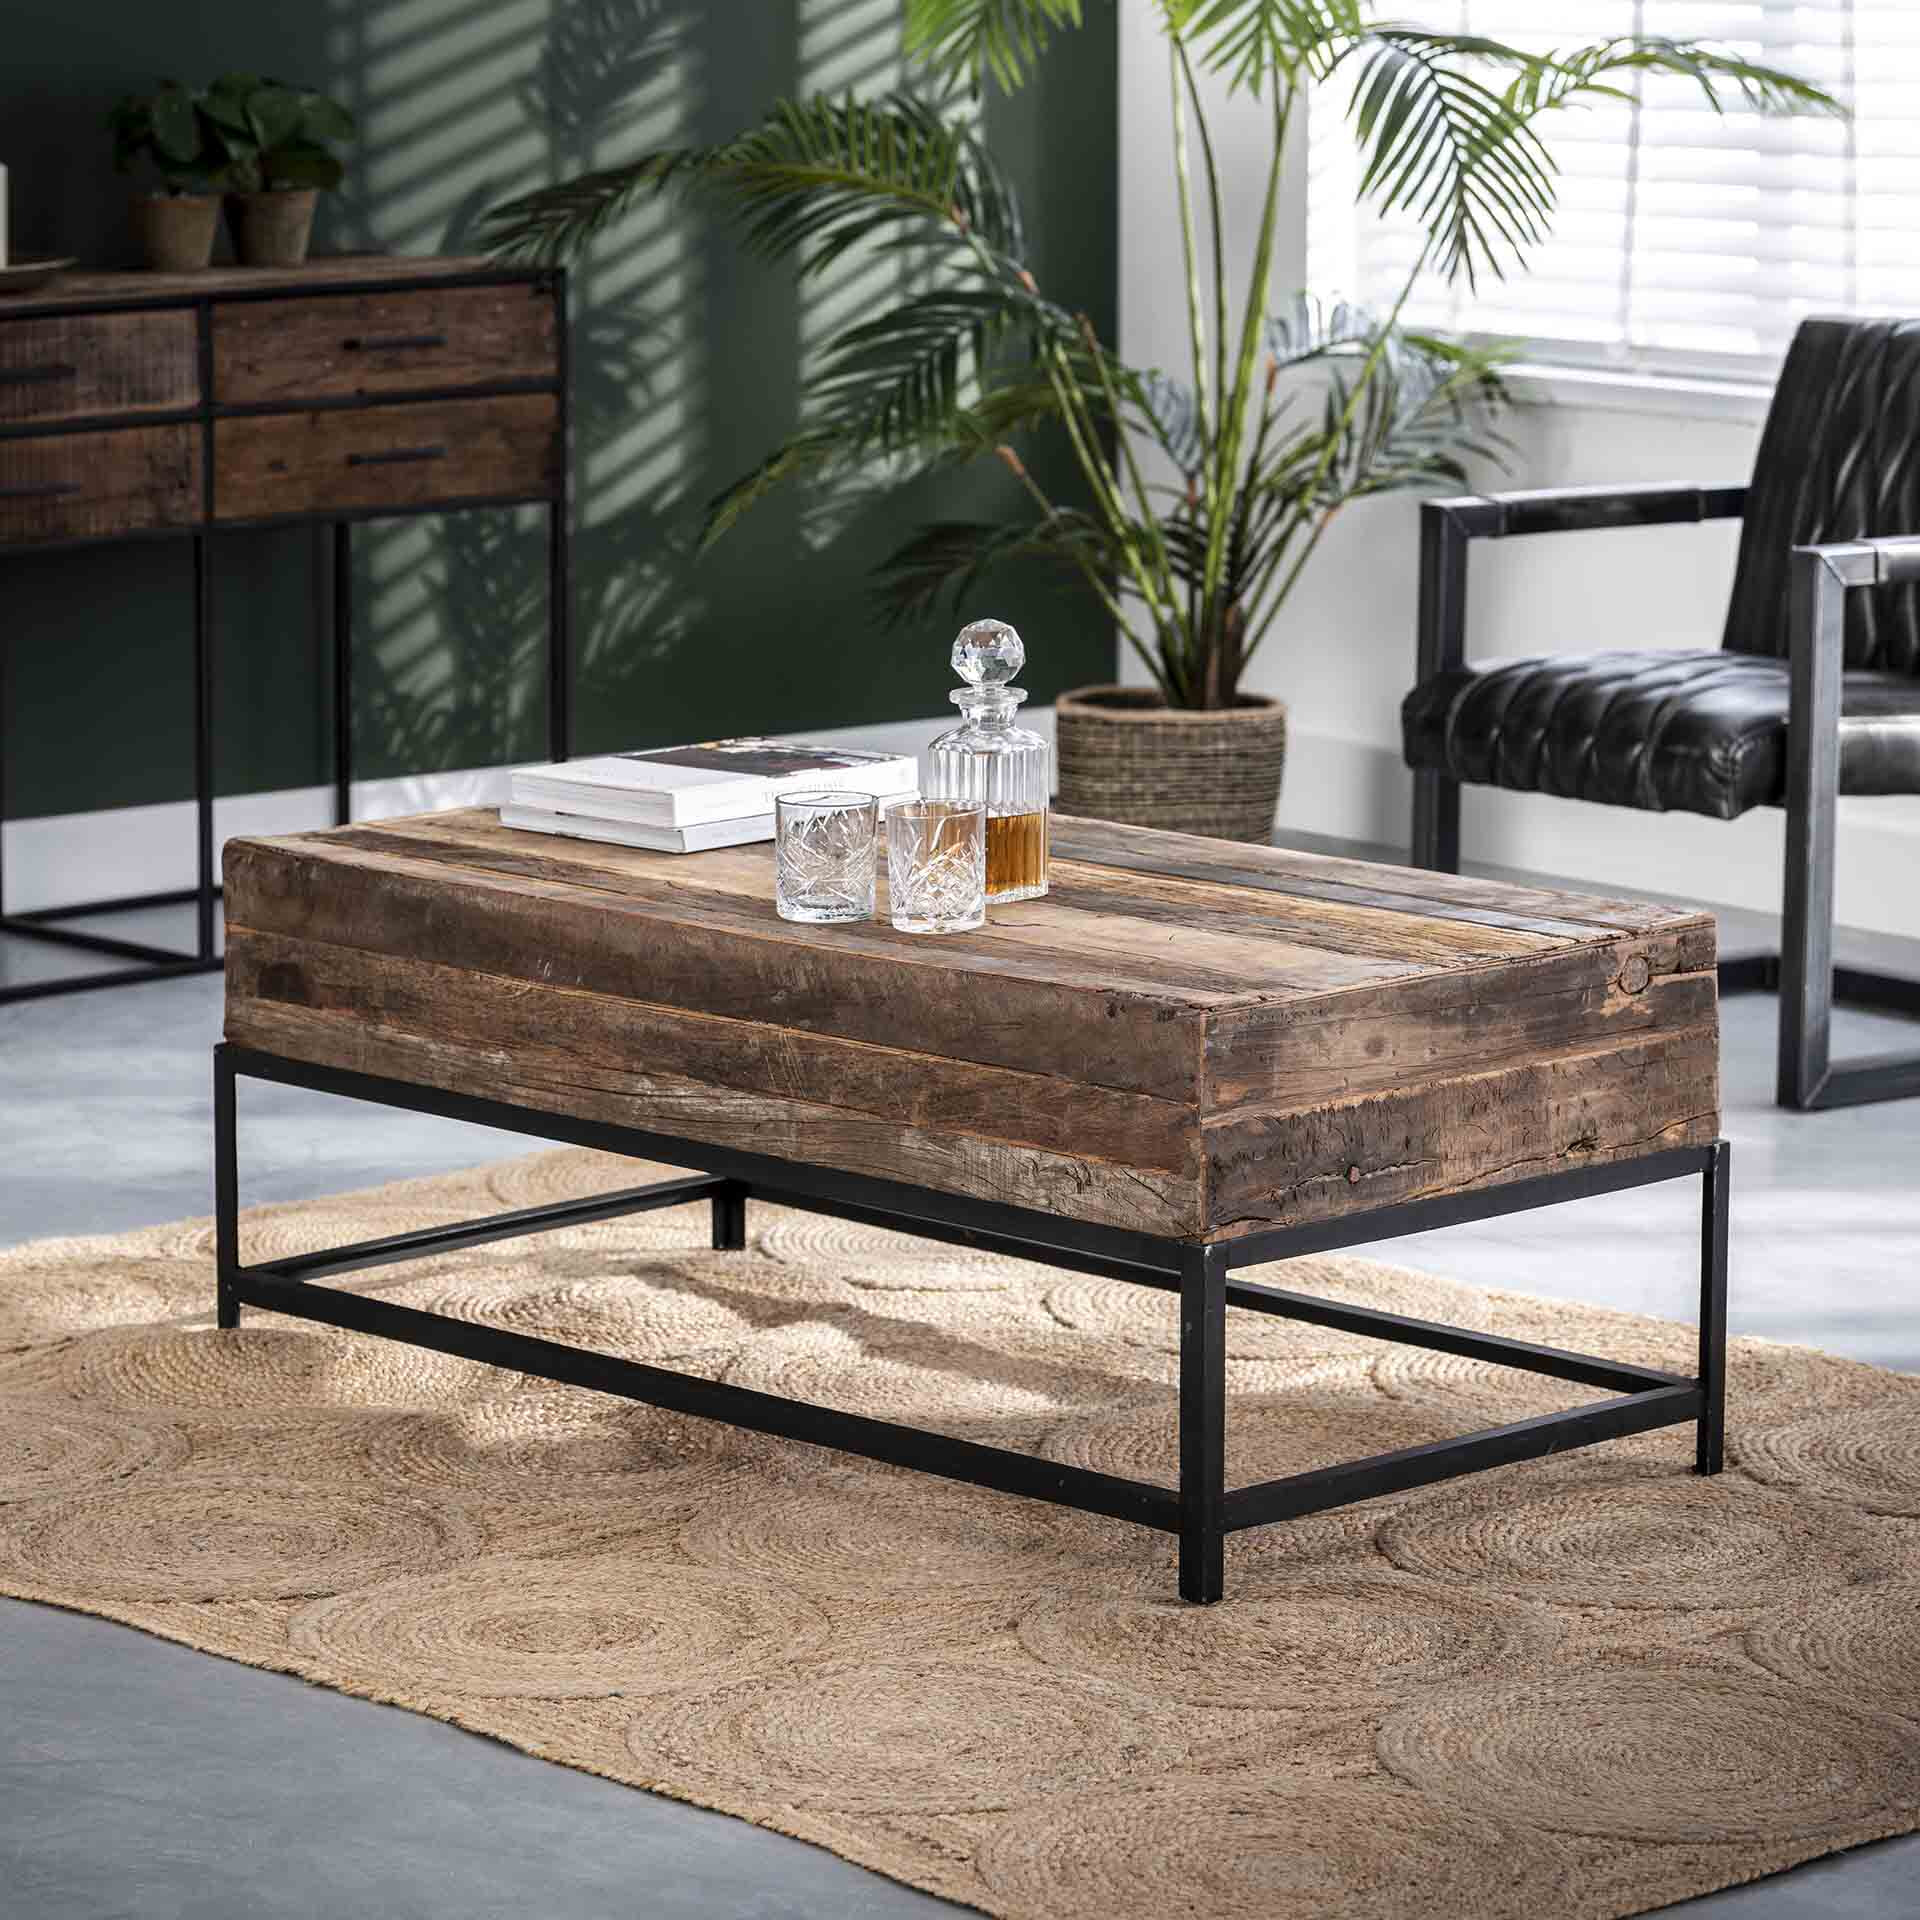 Salontafel 'Lodge' 120 x 60cm | LifestyleFurn